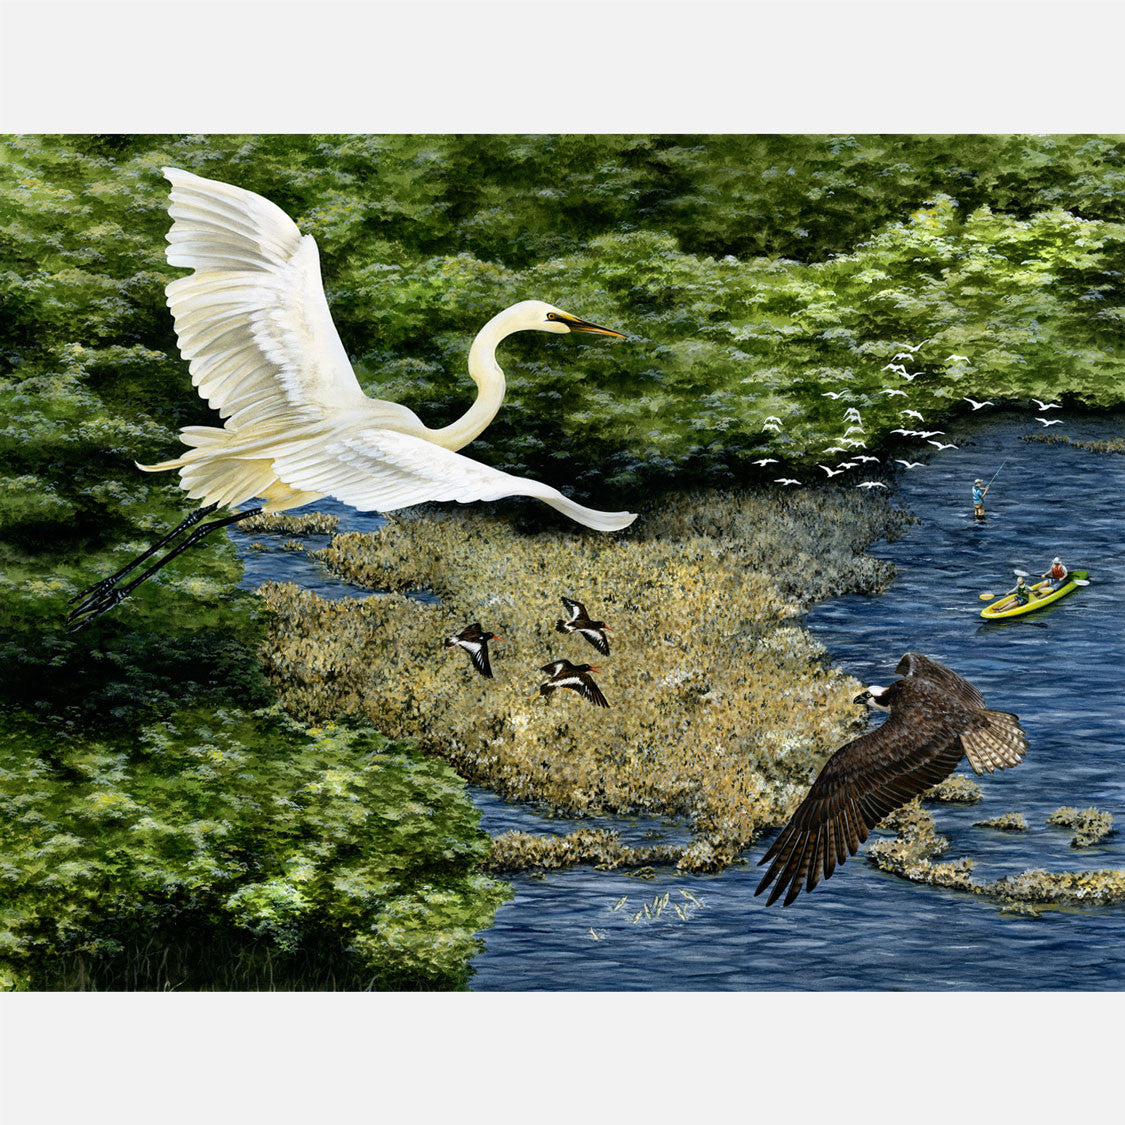 This beautiful, highly detailed and accurate illustration is of an oyster reef from a bird's eye view featuring a great egret and an osprey.